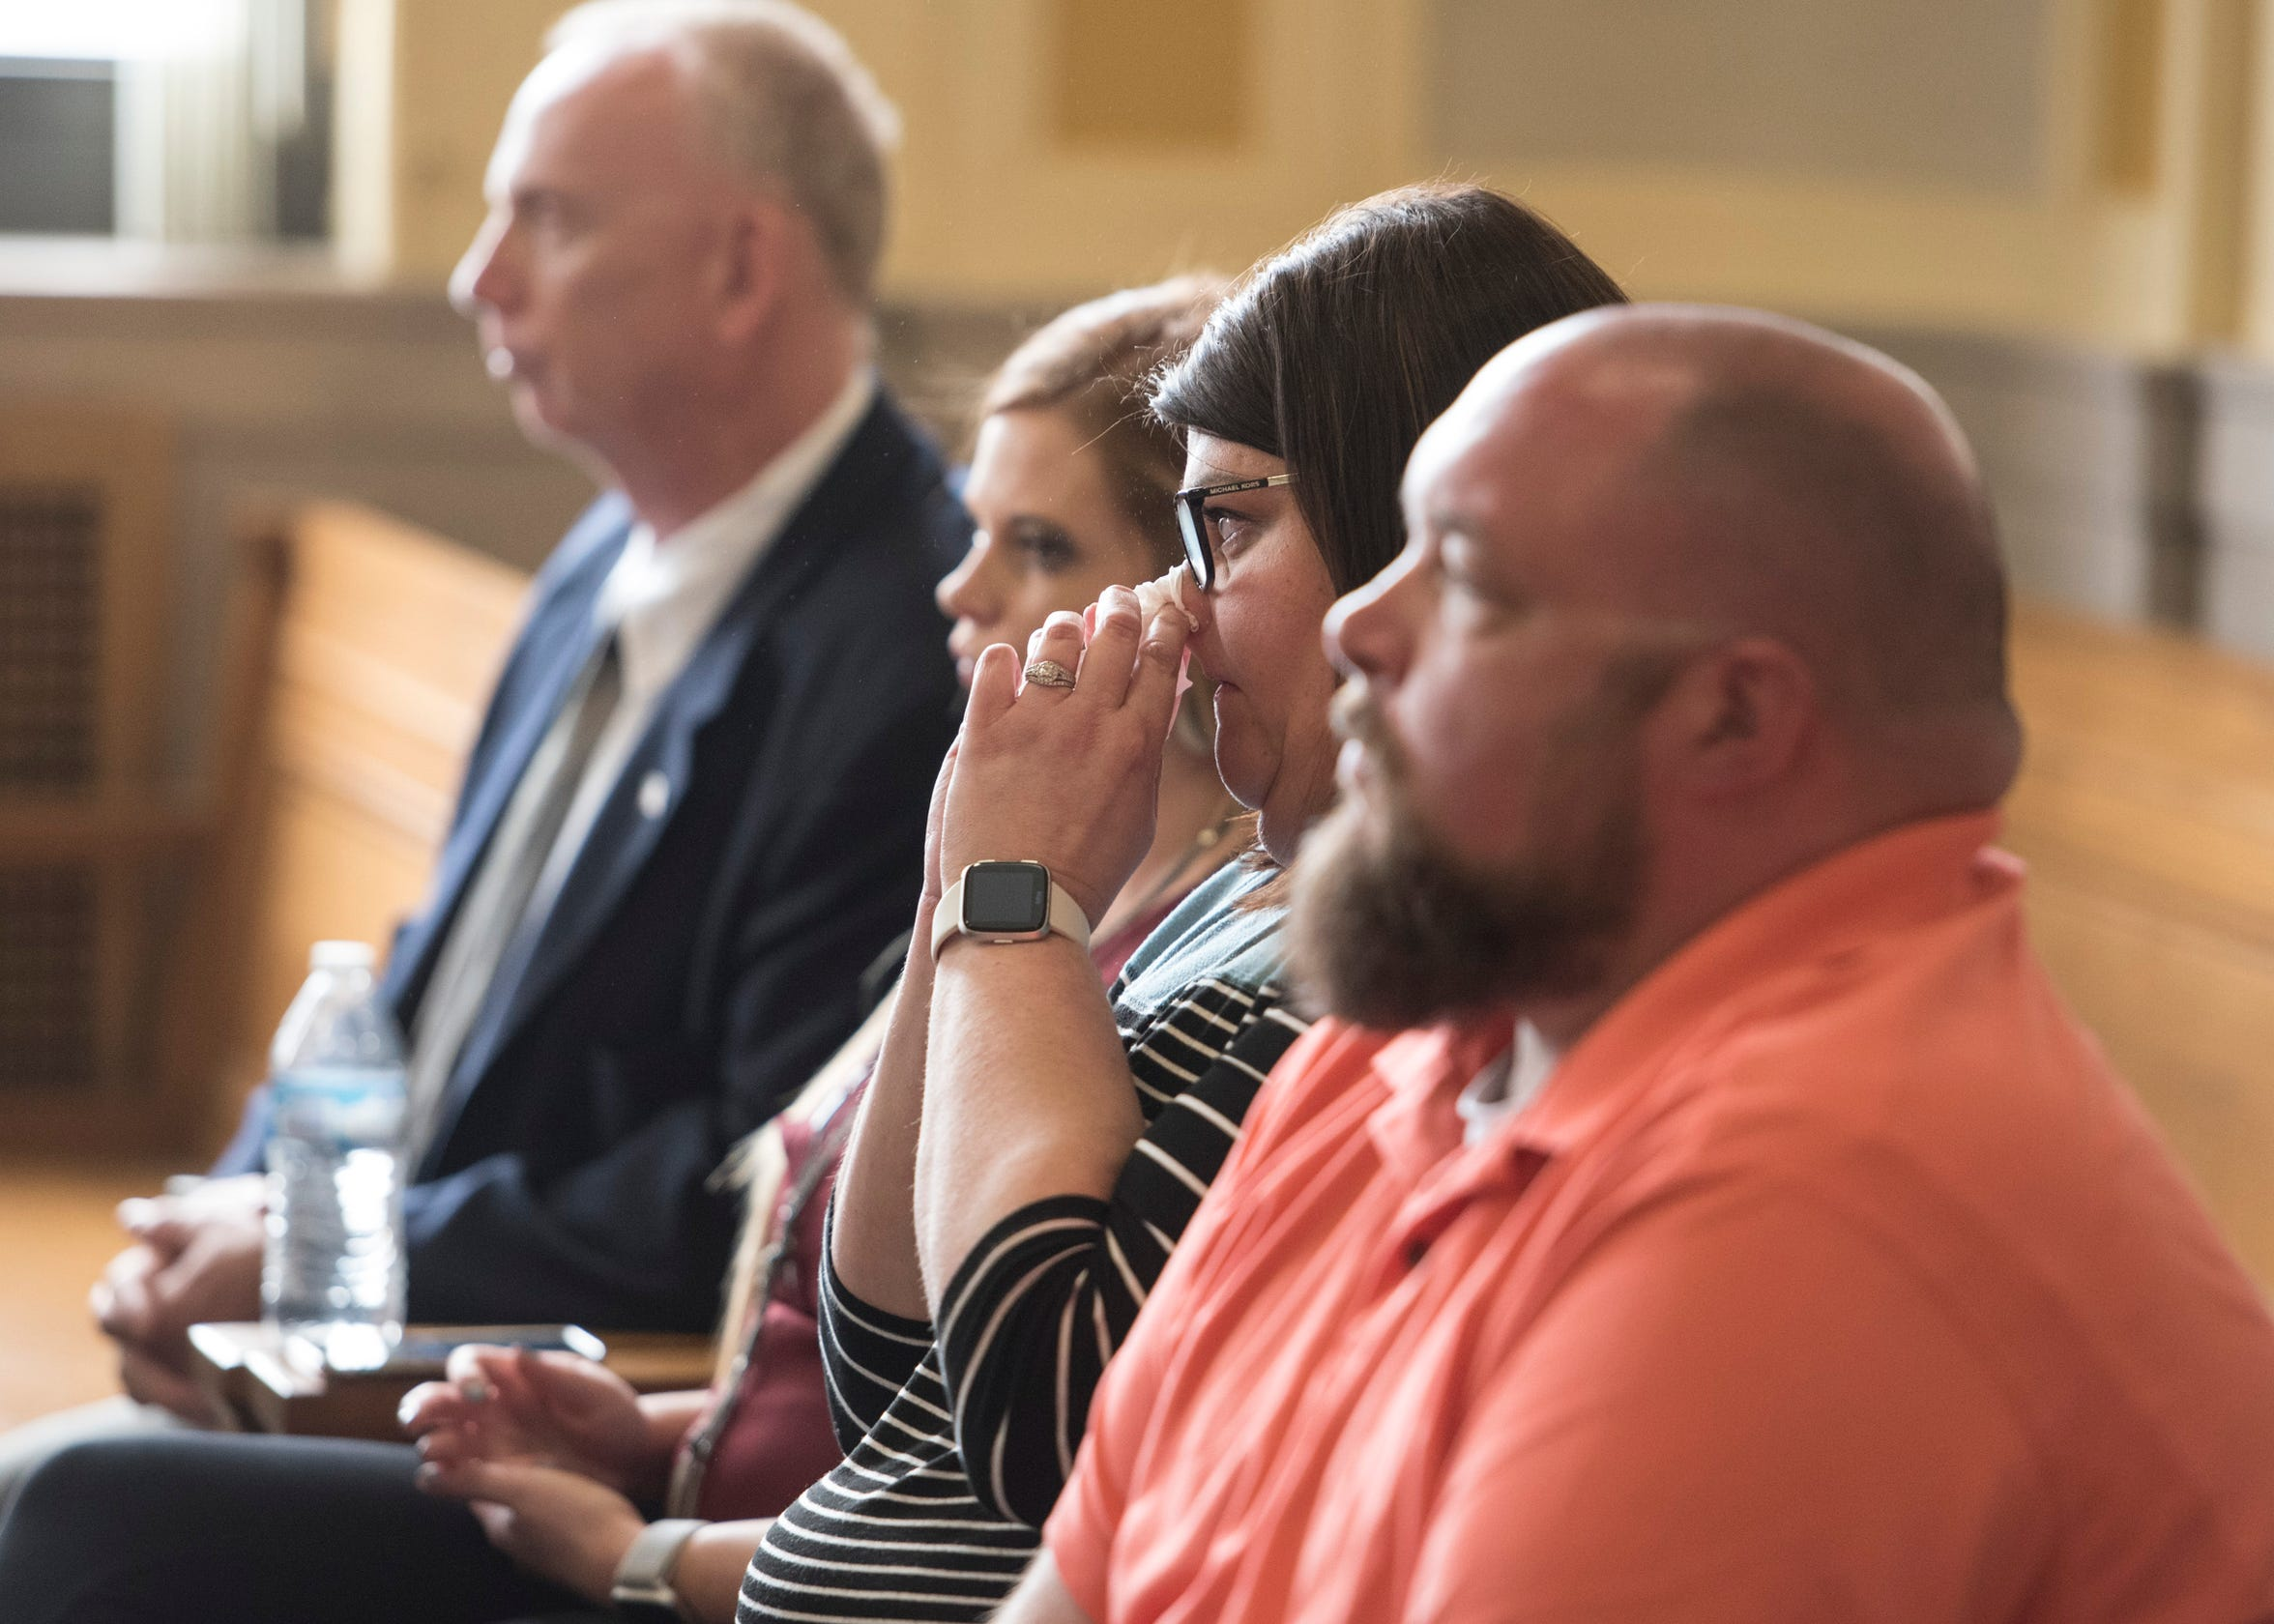 An emotional Shelley Mathias sits in Scioto County Common Pleas Court on Wednesday, April, 17, 2019, as Chillicothe native Casey Pigge pleaded guilty in the brutal attack on her husband Matthew Mathias, who sits beside her, last year at Southern Ohio Correctional Facility.